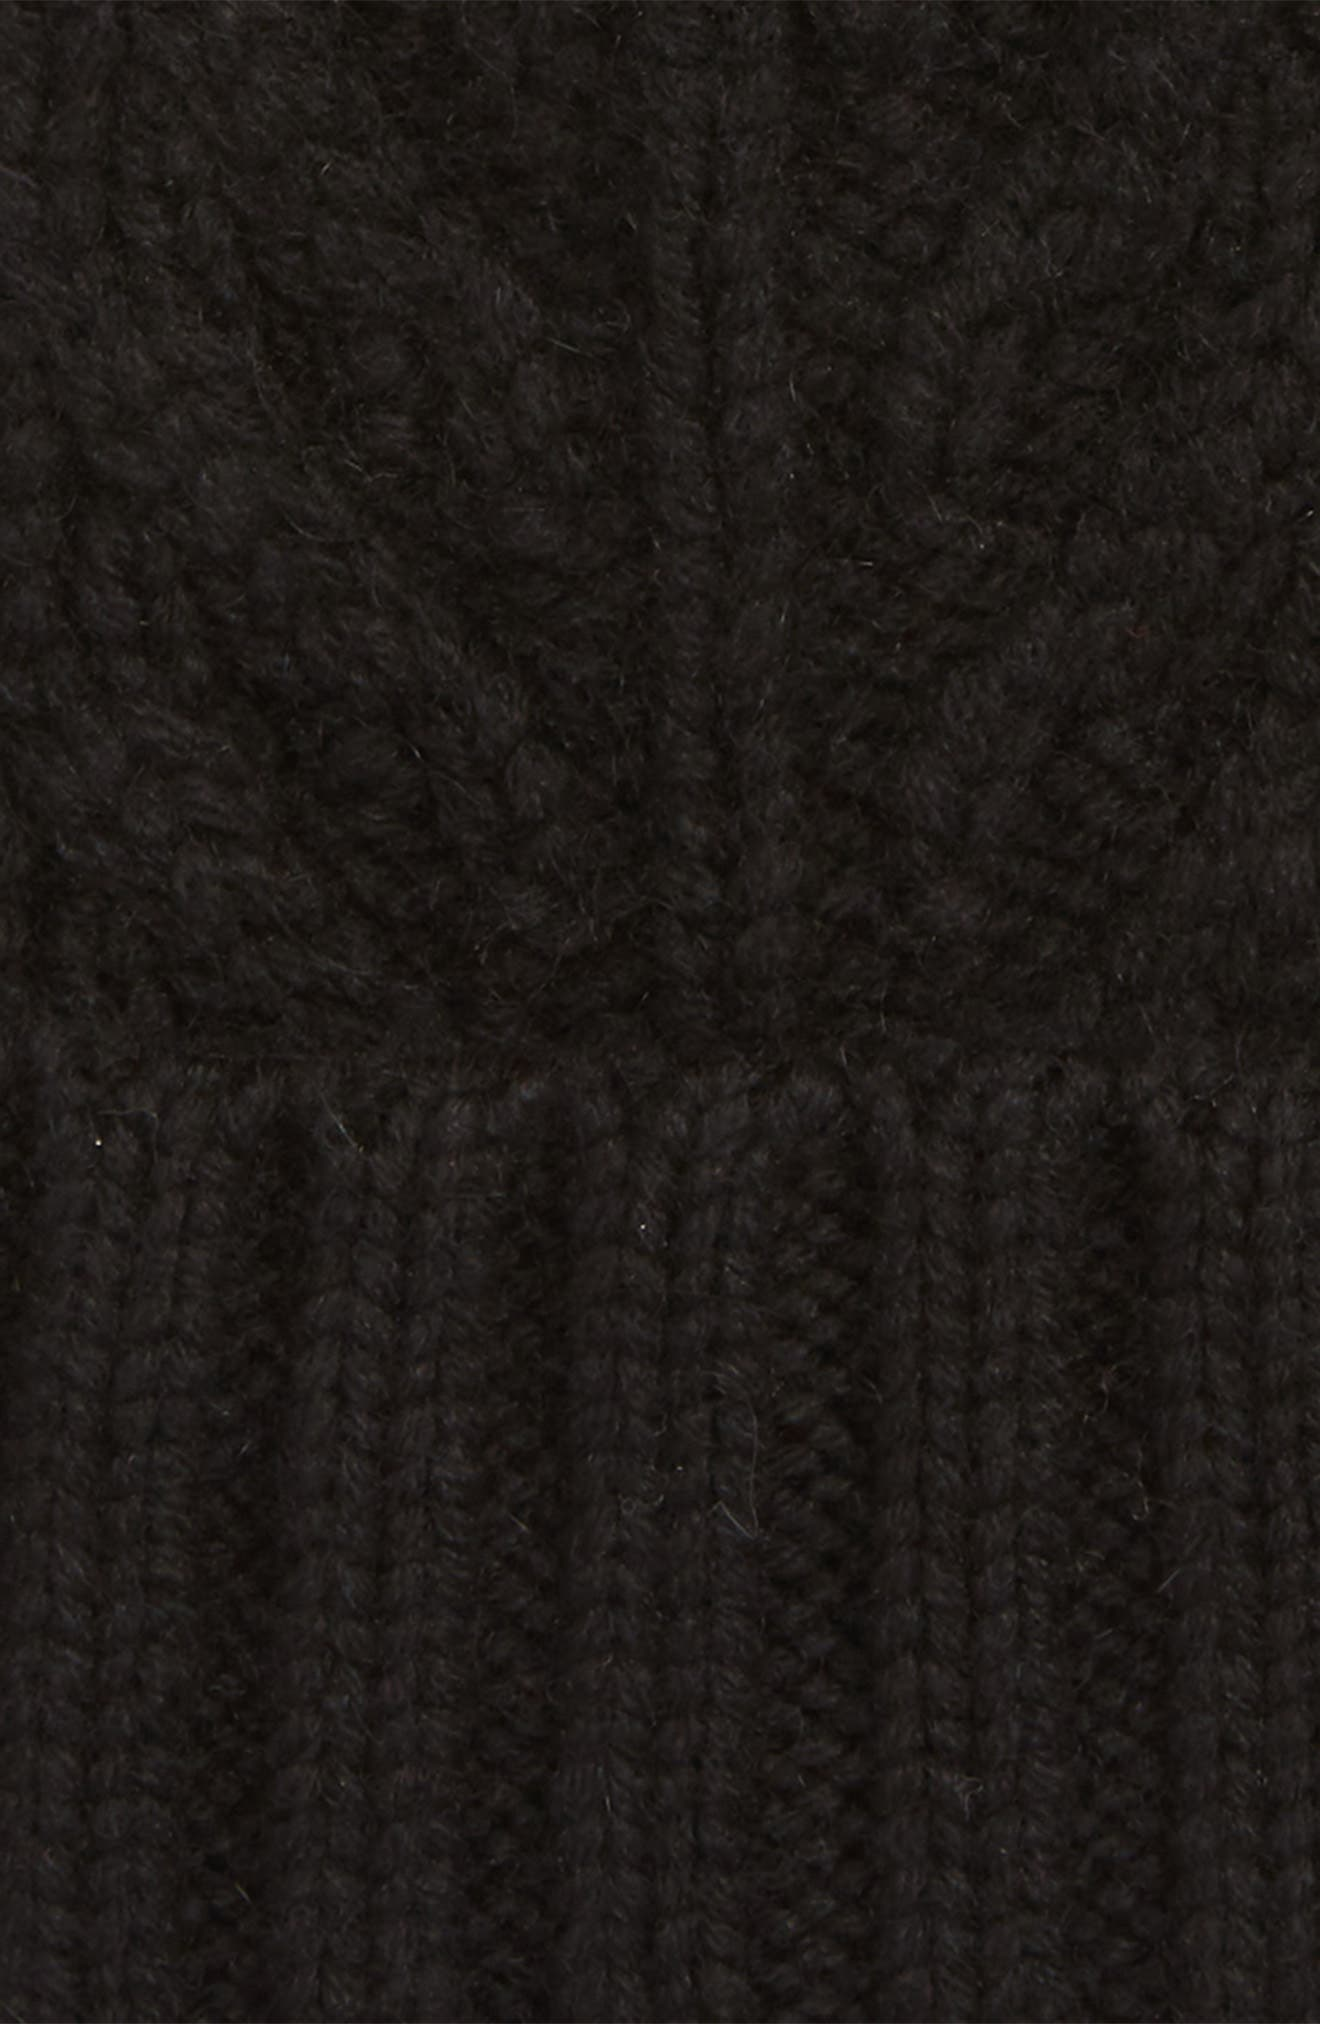 UGG<sup>®</sup> Pompom Cable Genuine Shearling Beanie,                             Alternate thumbnail 2, color,                             BLACK